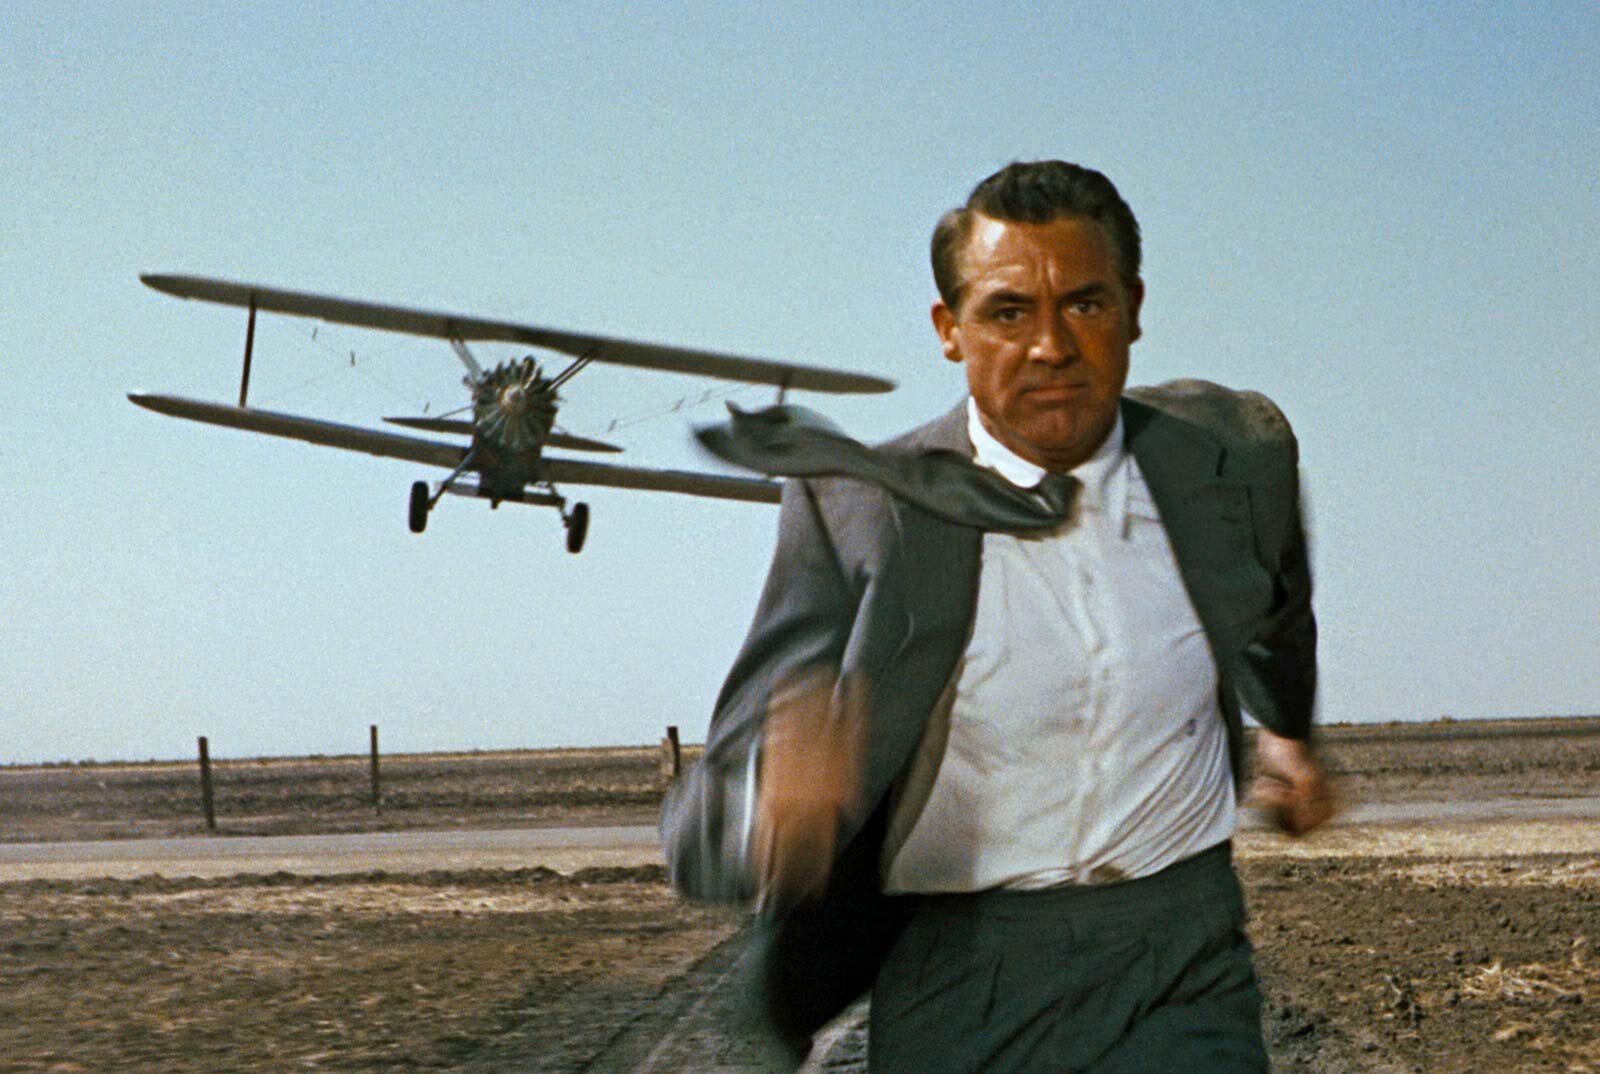 North By Northwest - Thursday May 21, 2020 2pm & 7pmAlfred Hitchcock Classic! This classic  film finds New York City ad executive Roger O. Thornhill (Cary Grant) pursued by ruthless spy Phillip Vandamm (James Mason) after Thornhill is mistaken for a government agent. Hunted relentlessly Thornhill ends up on a cross-country journey, meeting the beautiful and mysterious Eve Kendall (Eva Marie Saint) along the way. Runtime: 2hr and 16minClick here for more information